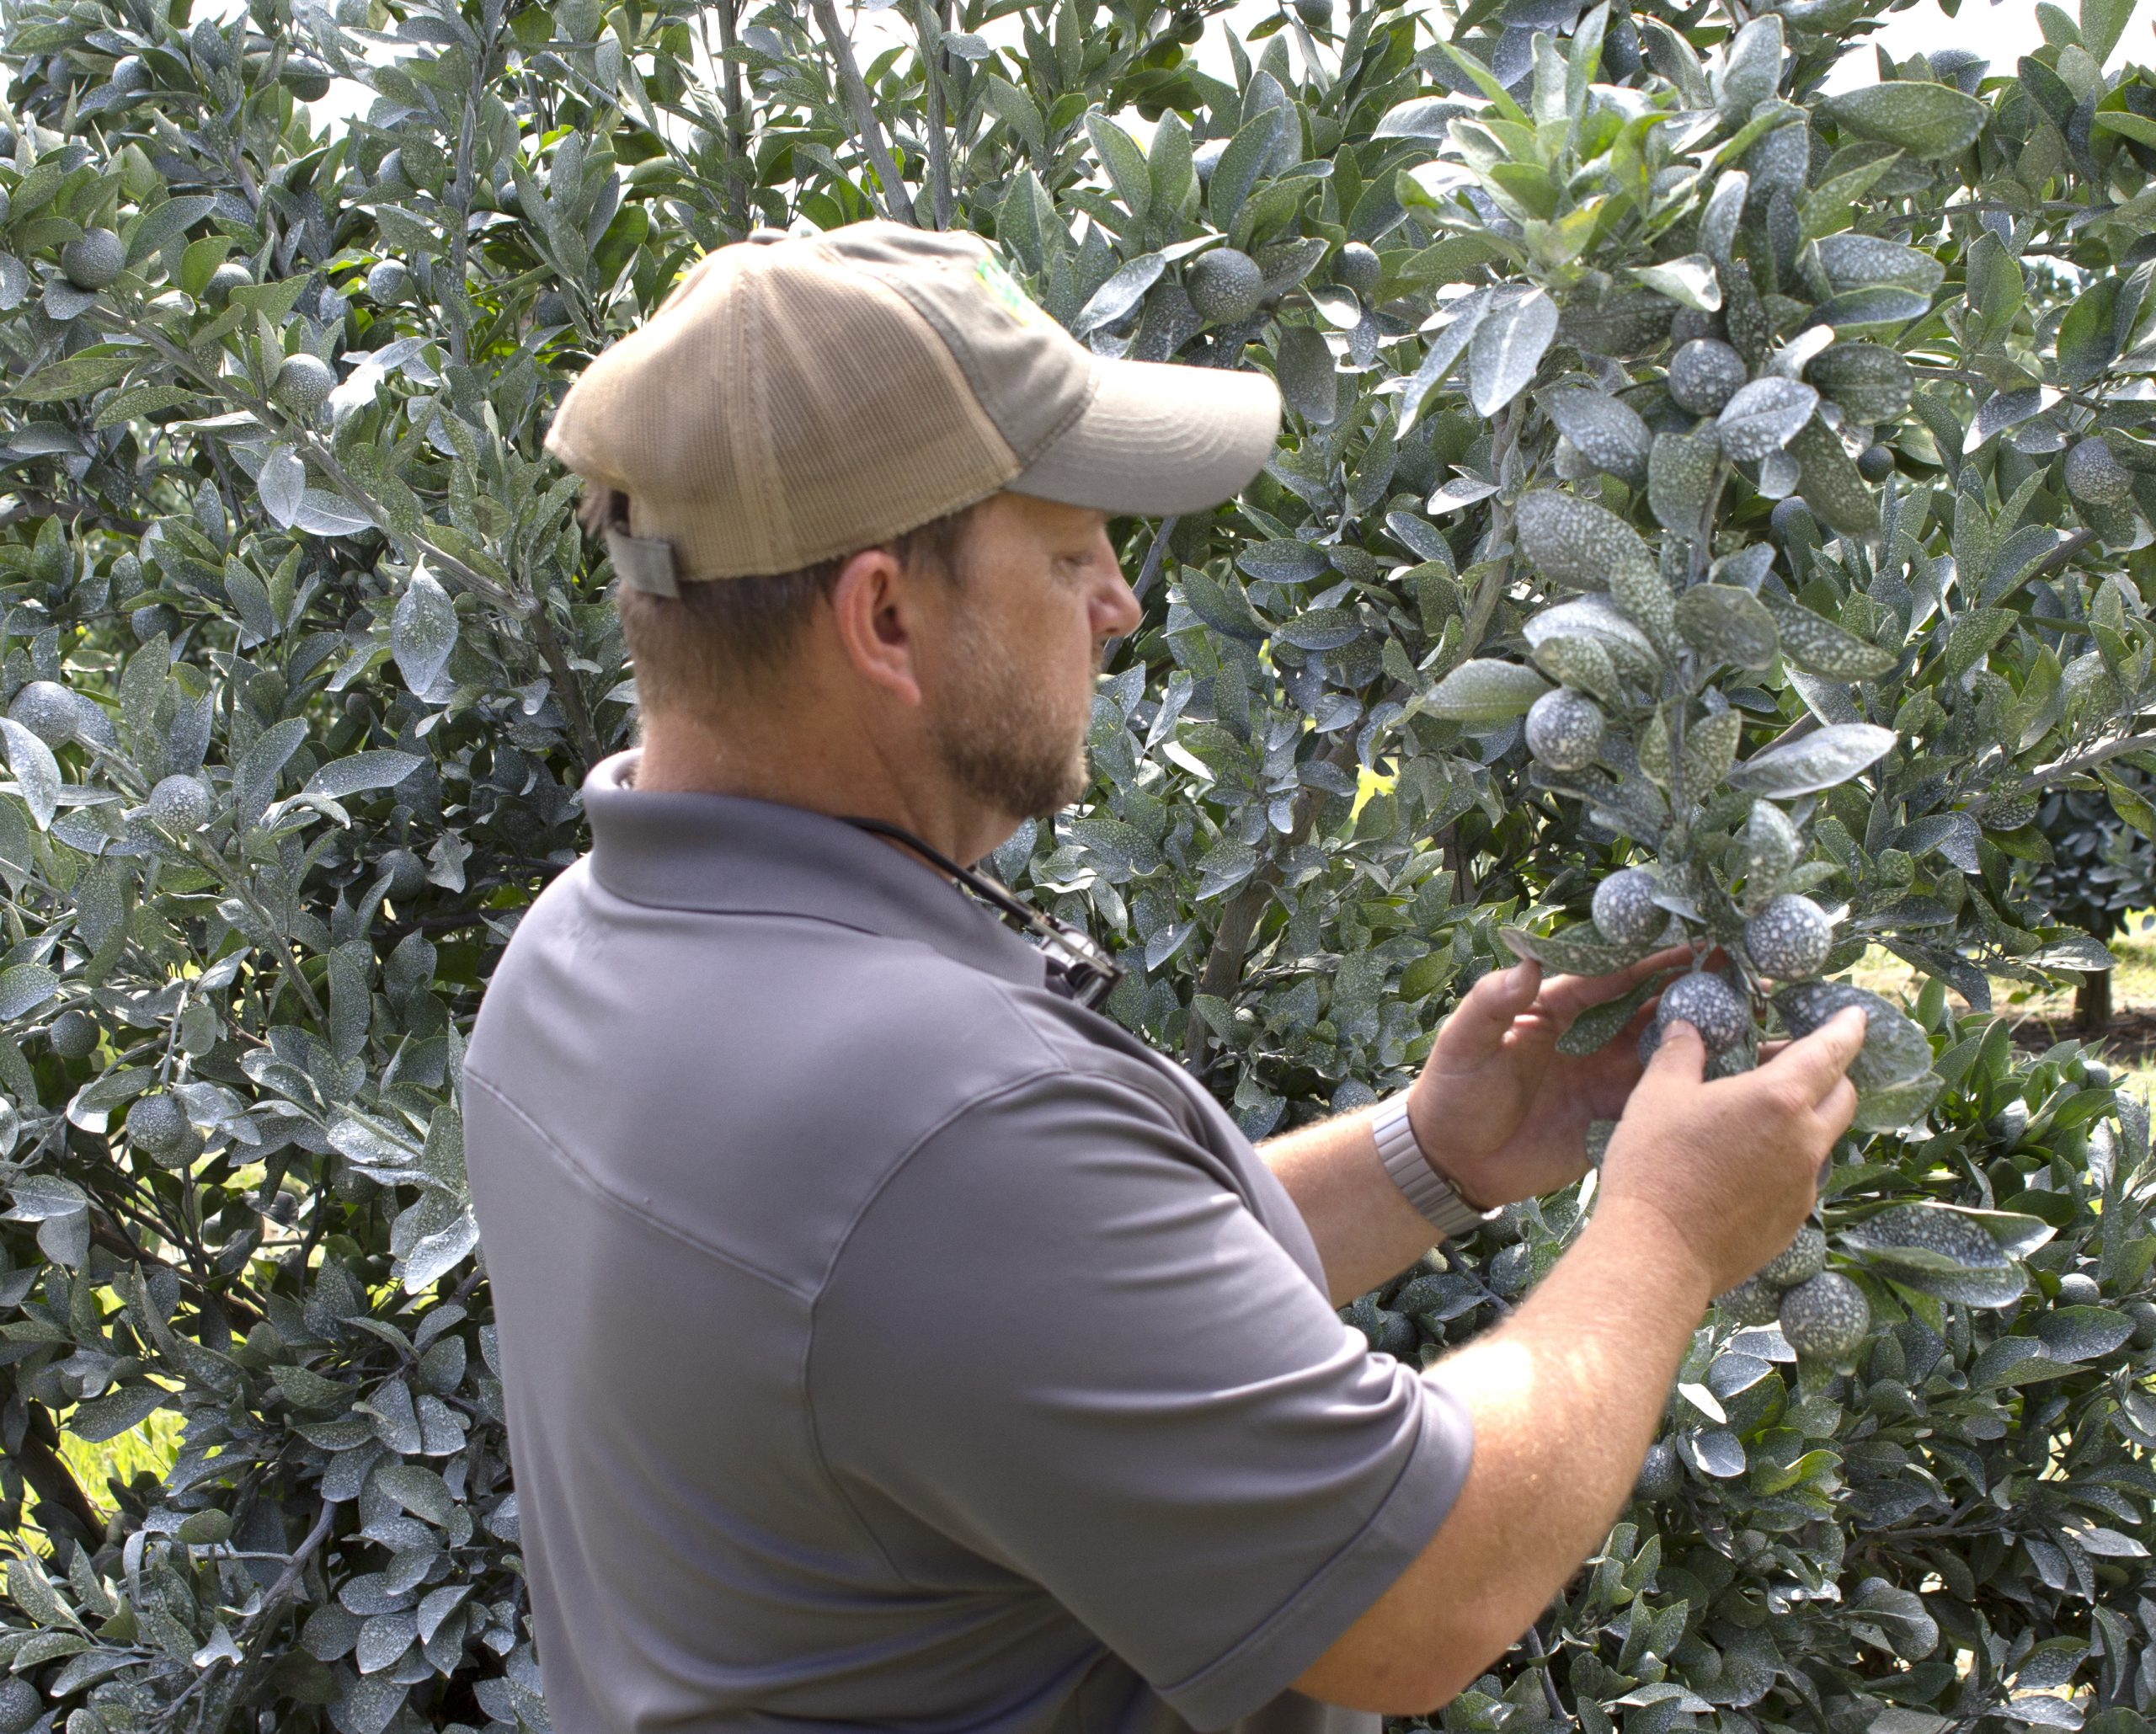 Holding crop with kaolin protectant